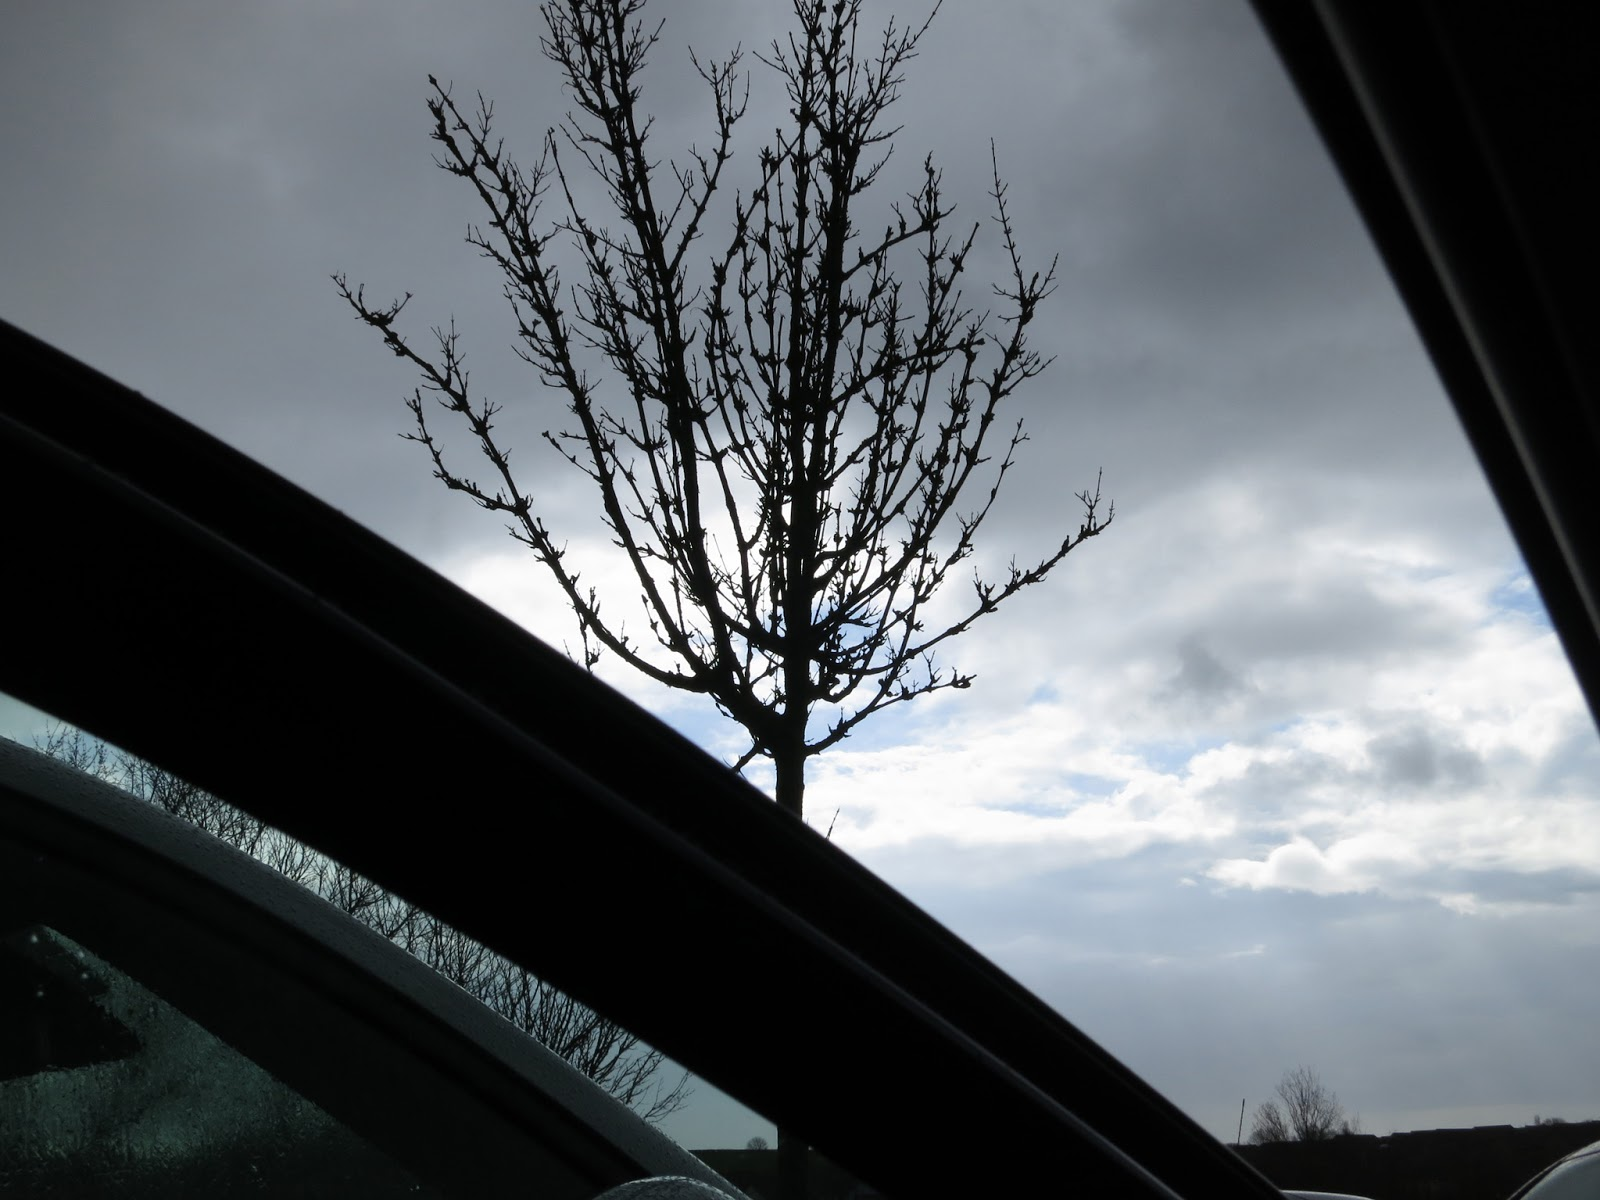 Young tree seen through car door, silhouetted against dark and cloudy sky.